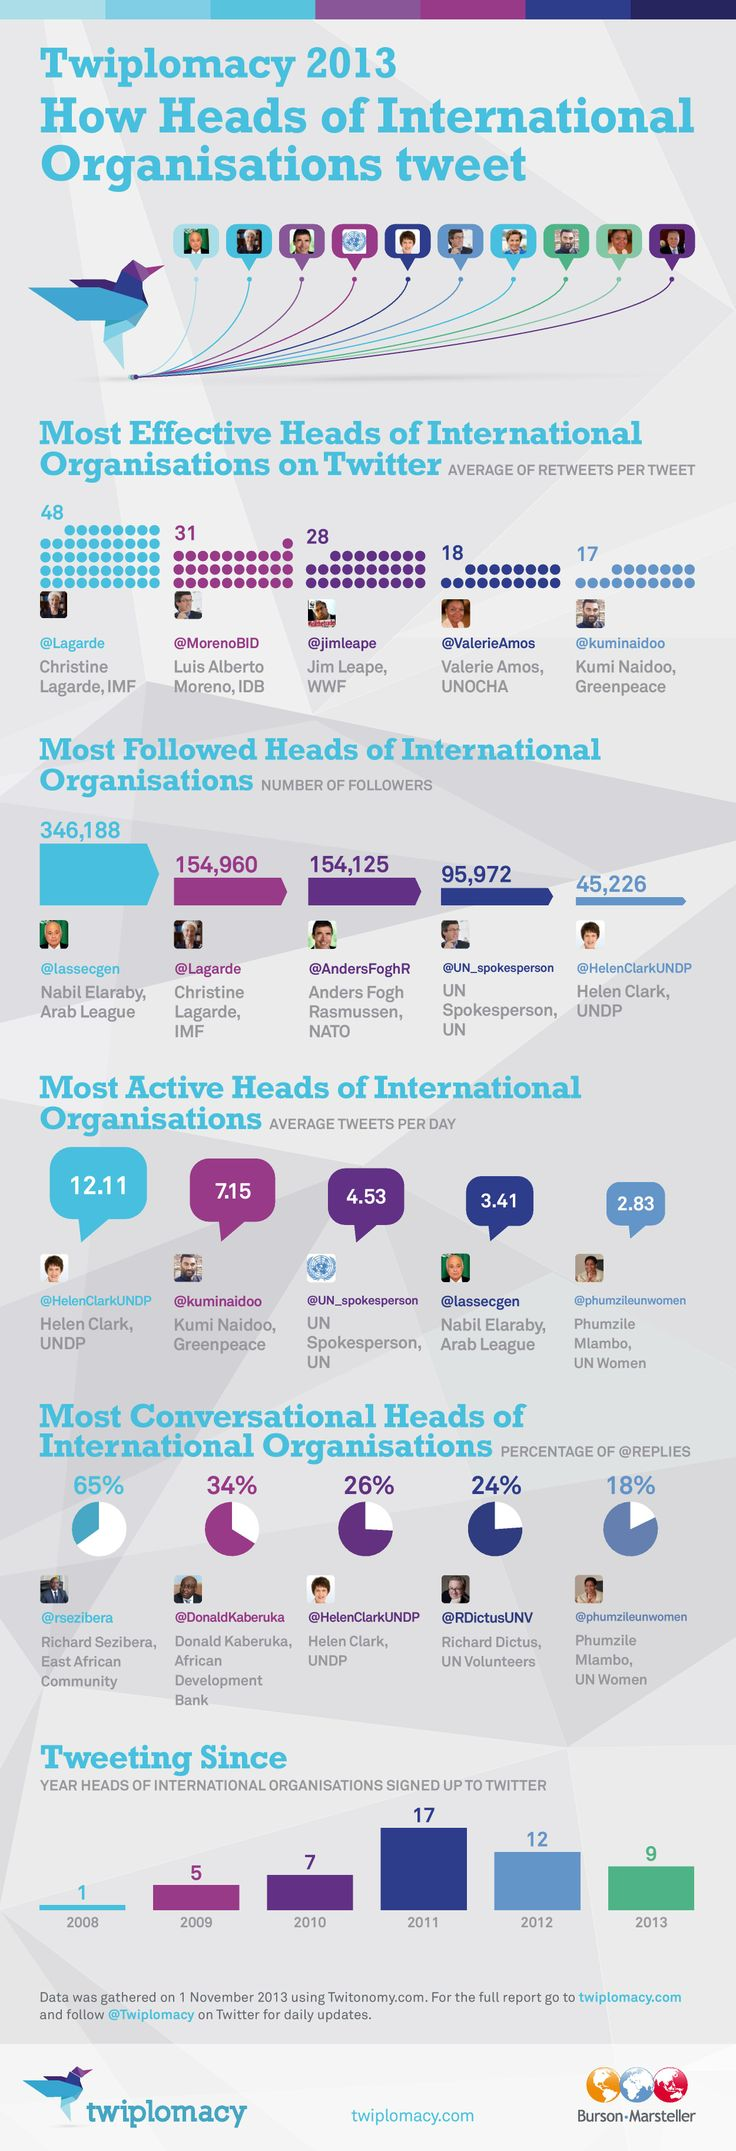 Twiplomacy 2013: How Heads of International Organisations Tweet #Twitter #infographic